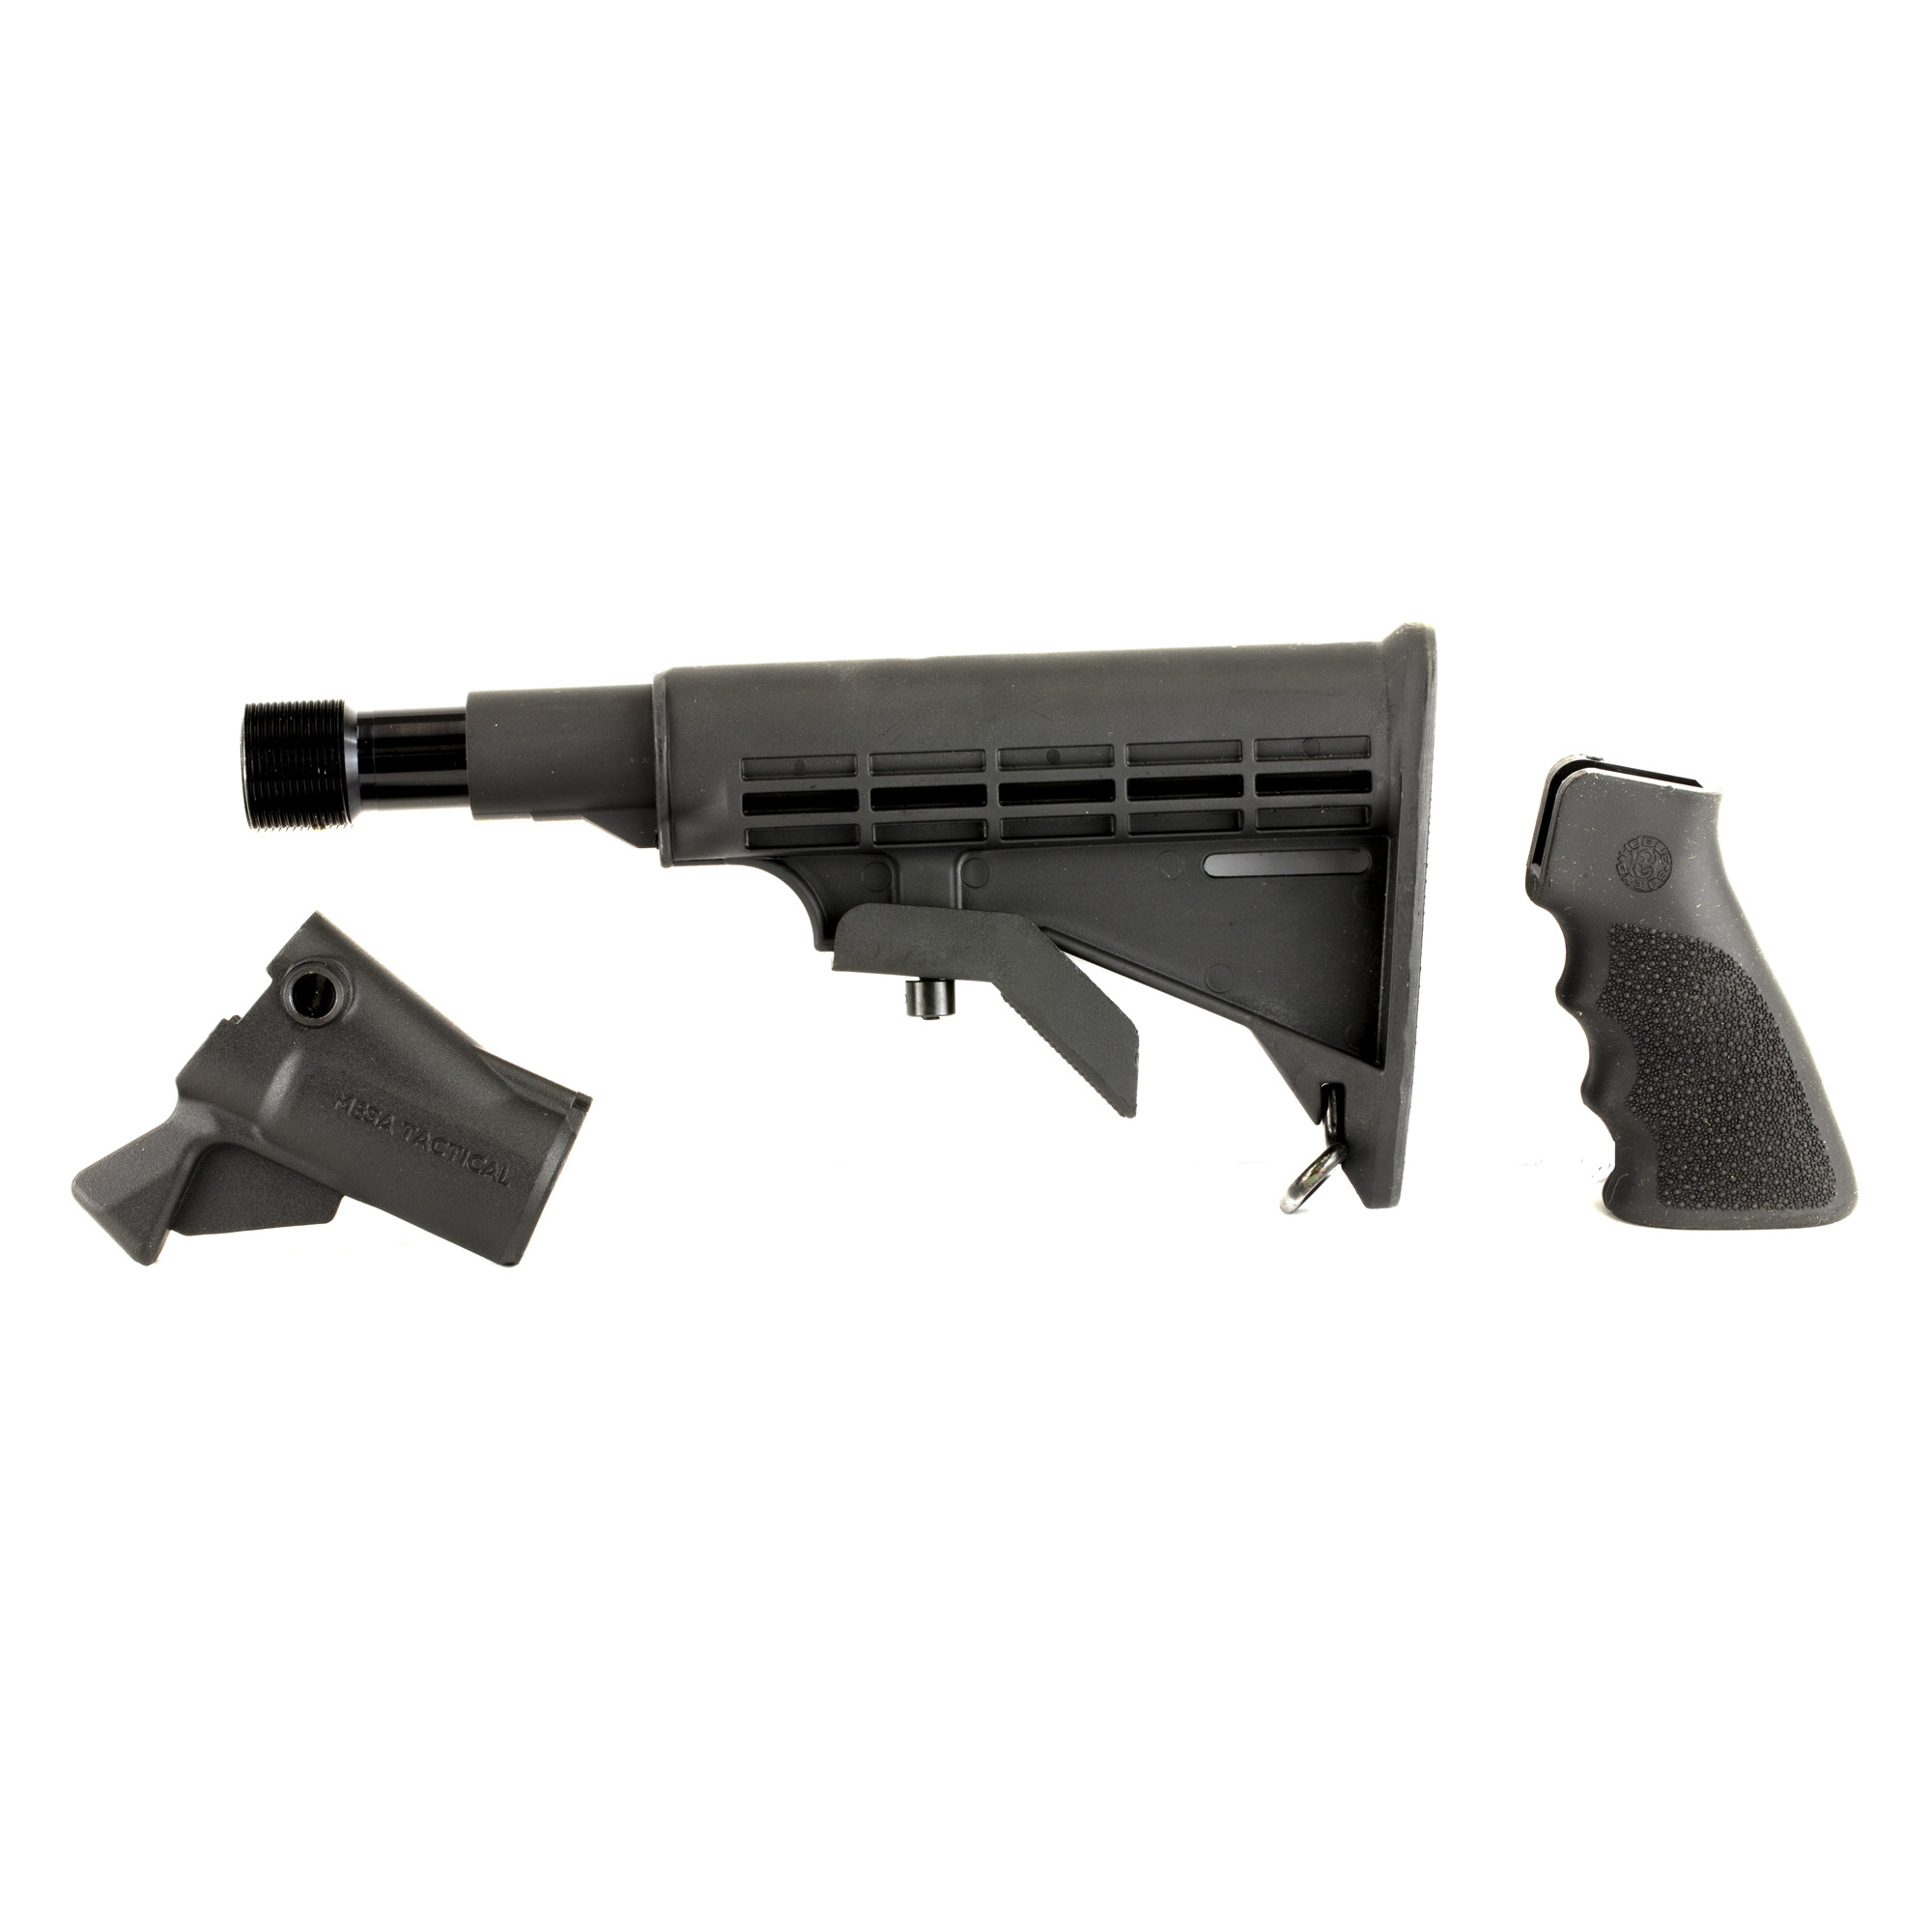 """Mesa Tactical's LEO Telescoping Recoil Stock Kit for Remington 870 (12-GA) is the perfect kit for anyone looking to convert their 12-gauge shotgun to accept AR-15 parts and accessories. This adapter provides you with the ability to utilize AR-15 pistol grips"""" carbine receiver extensions and stocks. The LEO adapter will provide you with an optimal stock elevation allowing the use of iron sights or bead sights. The adapter also features a quick detach sling swivel socket and is made from high quality"""" precision"""" CNC machined aluminum. This kit also includes the Hydraulic recoil buffer designed to eat up the recoil on your defensive shotgun. Installation hardware is included. The adapter is easy to install and does not require a gunsmith to install."""